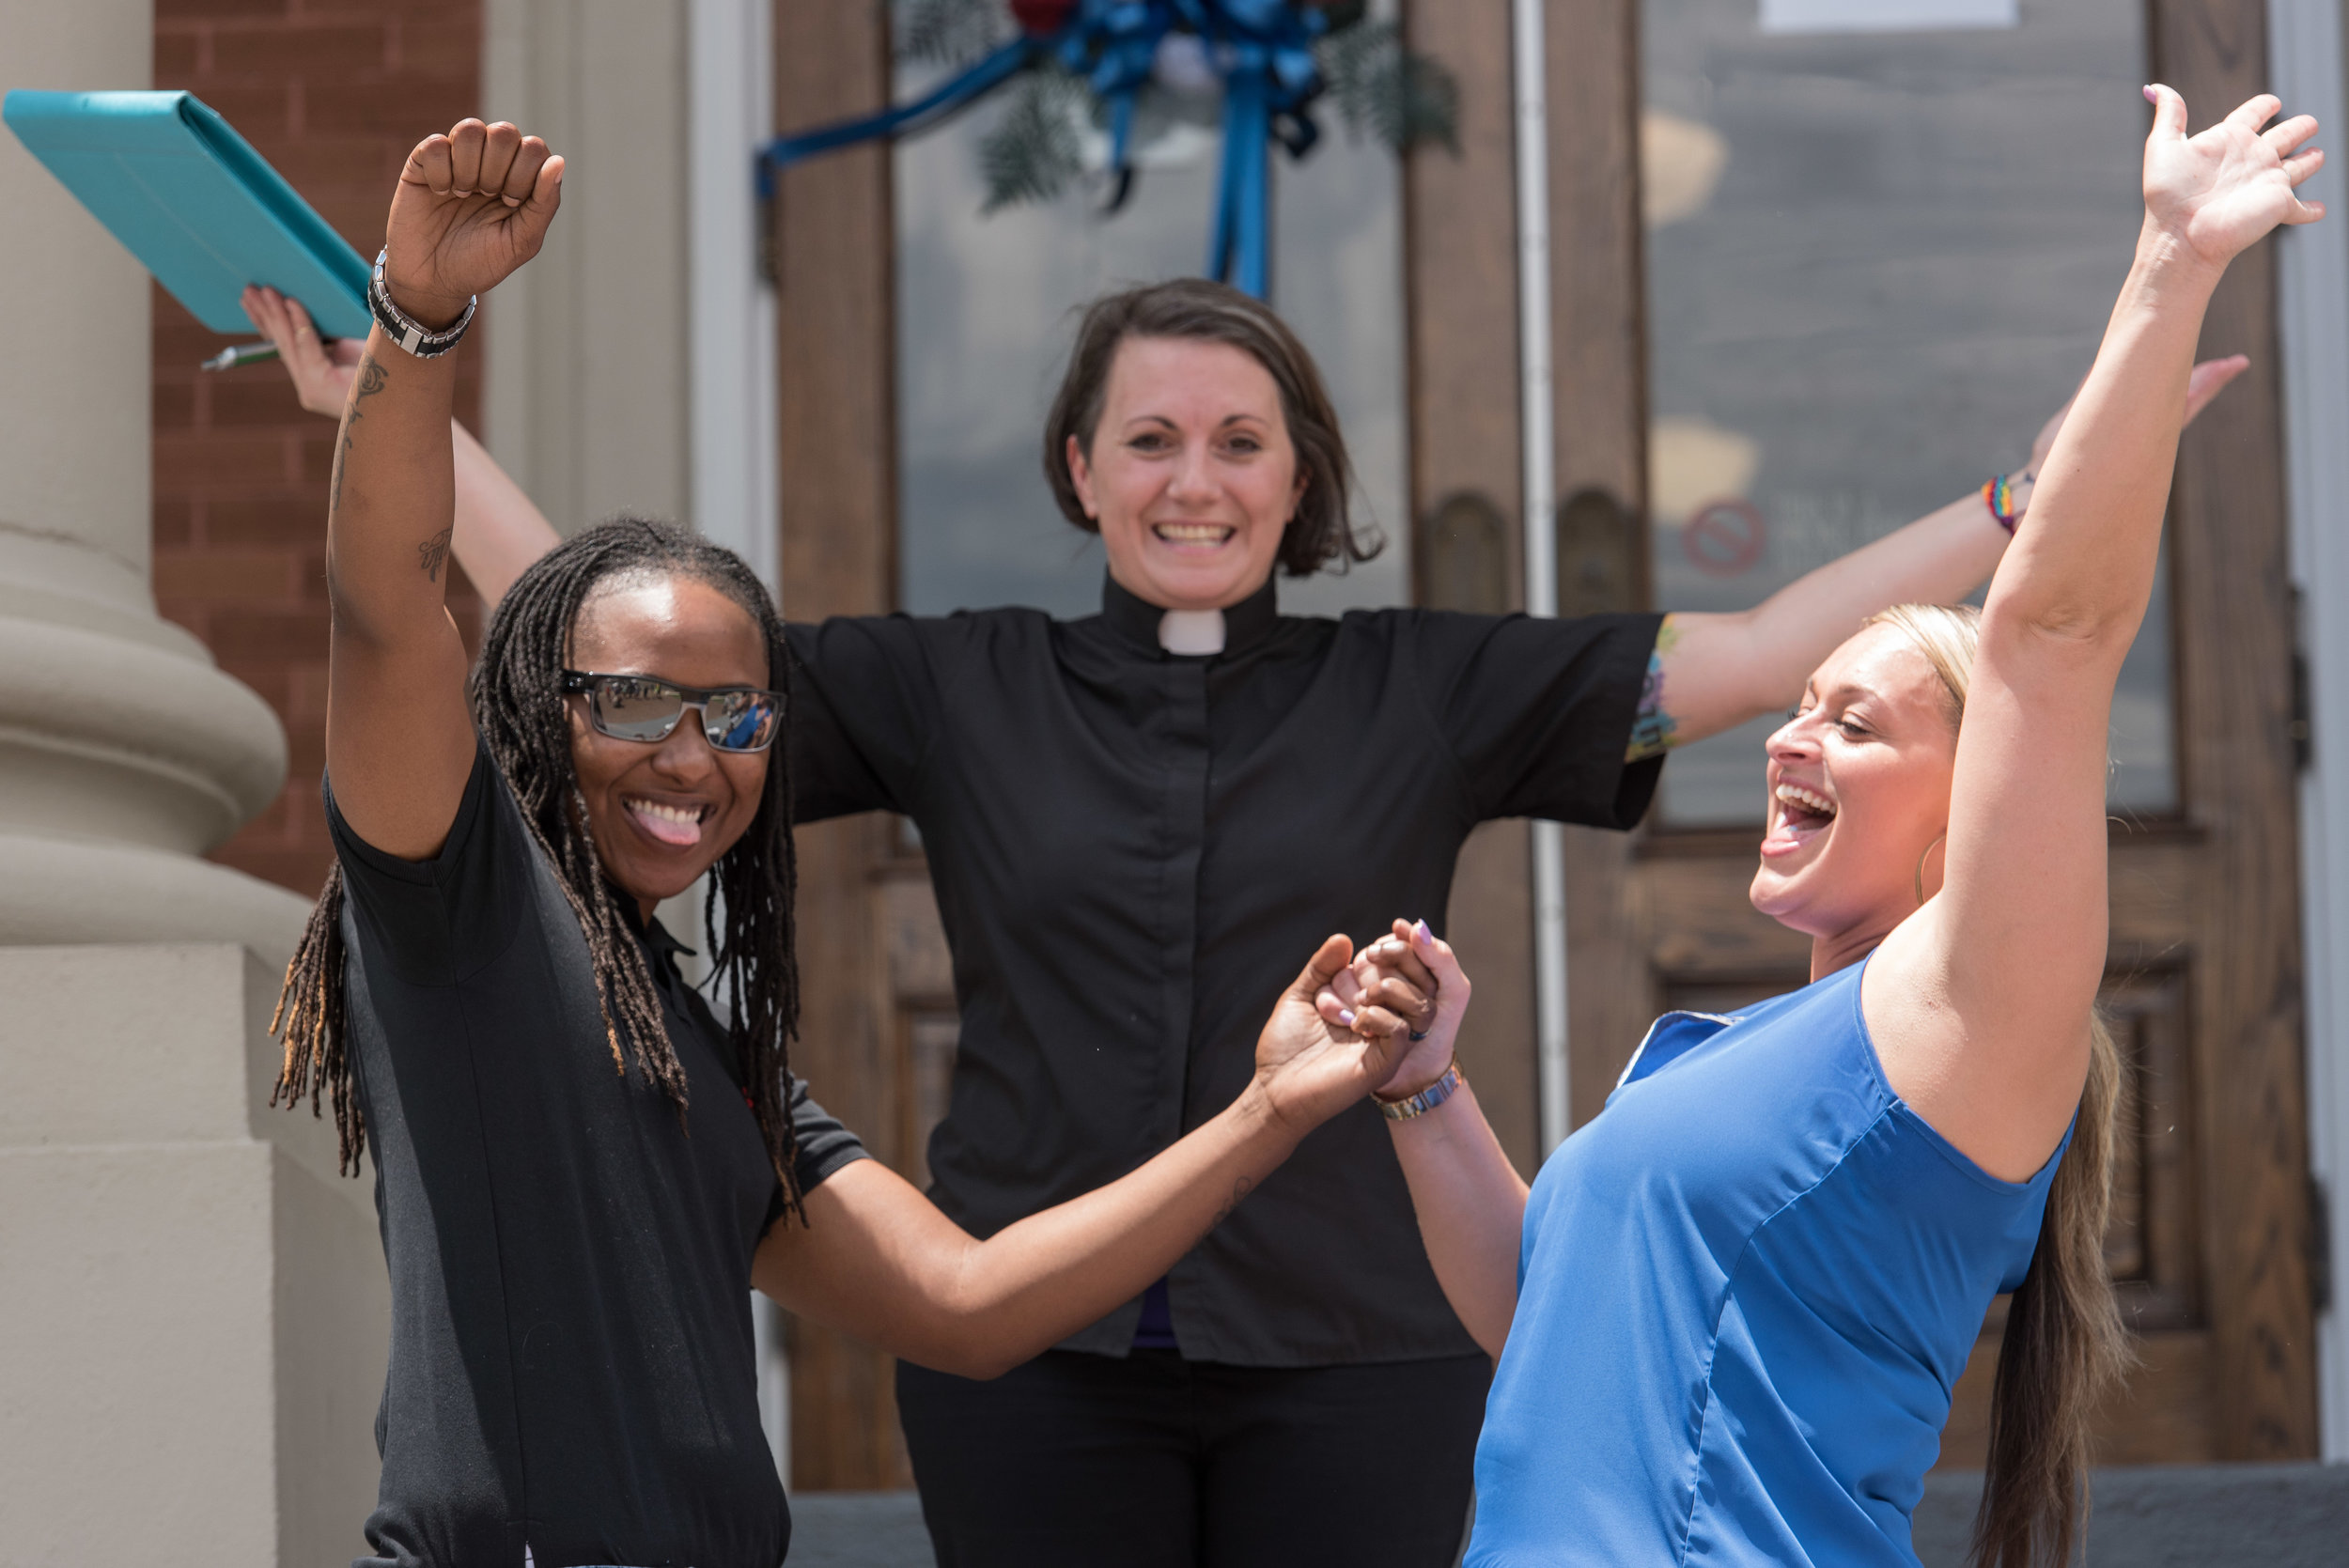 Celebrating, Cameron Stewart, left, and Amber Cameron, right,  are married by minister Brandiilyne Dear at Forrest County Courthouse in Hattiesburg, following the Supreme Court decision to legalize gay marriage across the United States. Stewart and Cameron are the third same-sex couple to be legally married in Forrest County. June 26, 2015.